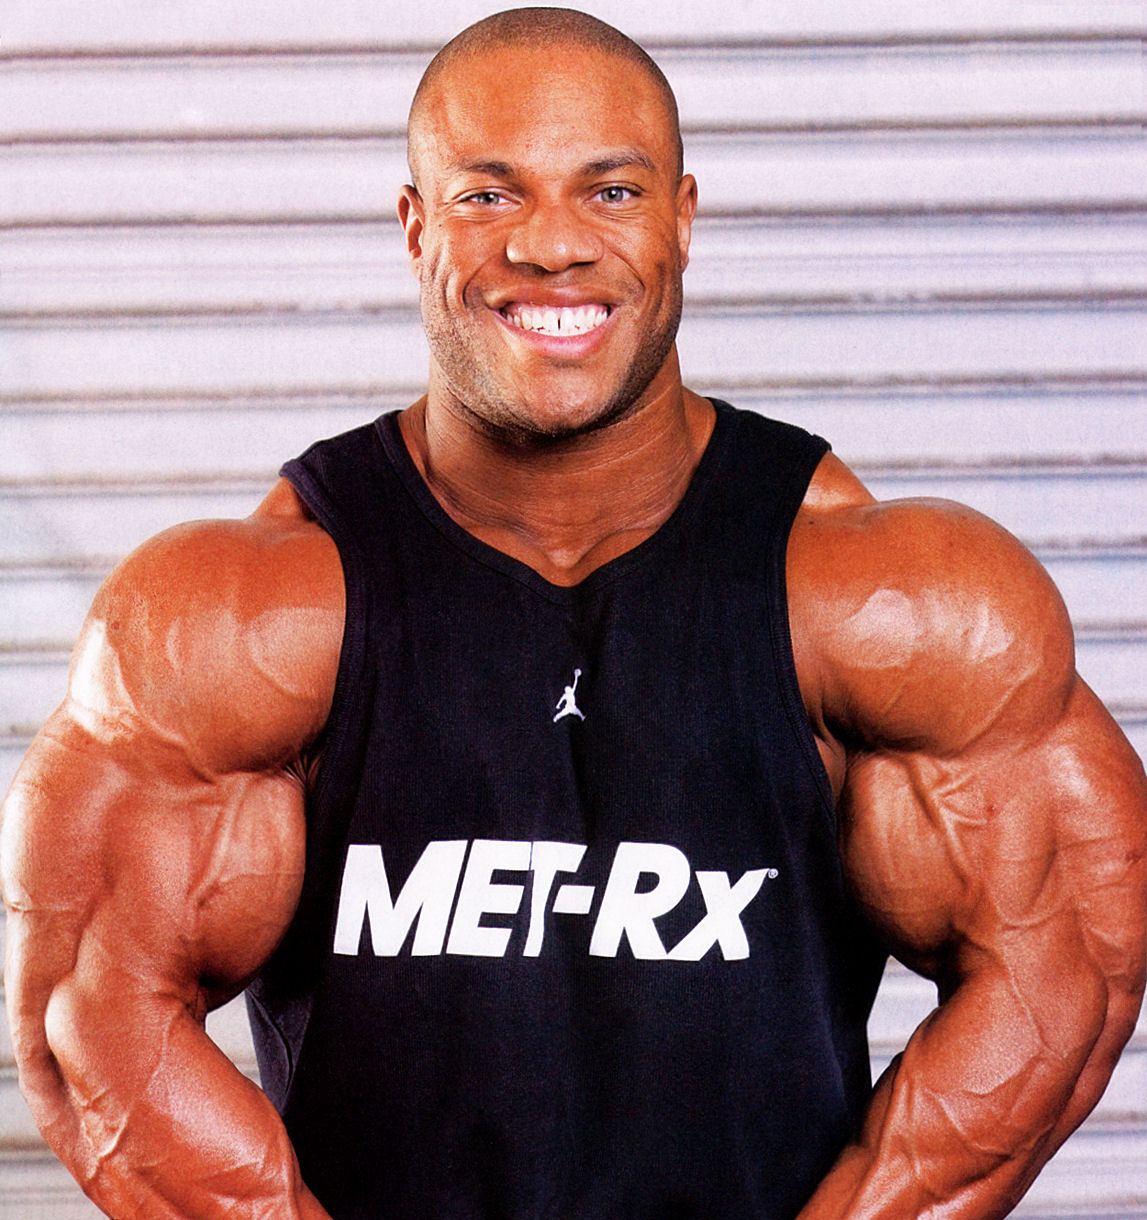 phil-heath-smiling-face-in-black-t-shirt